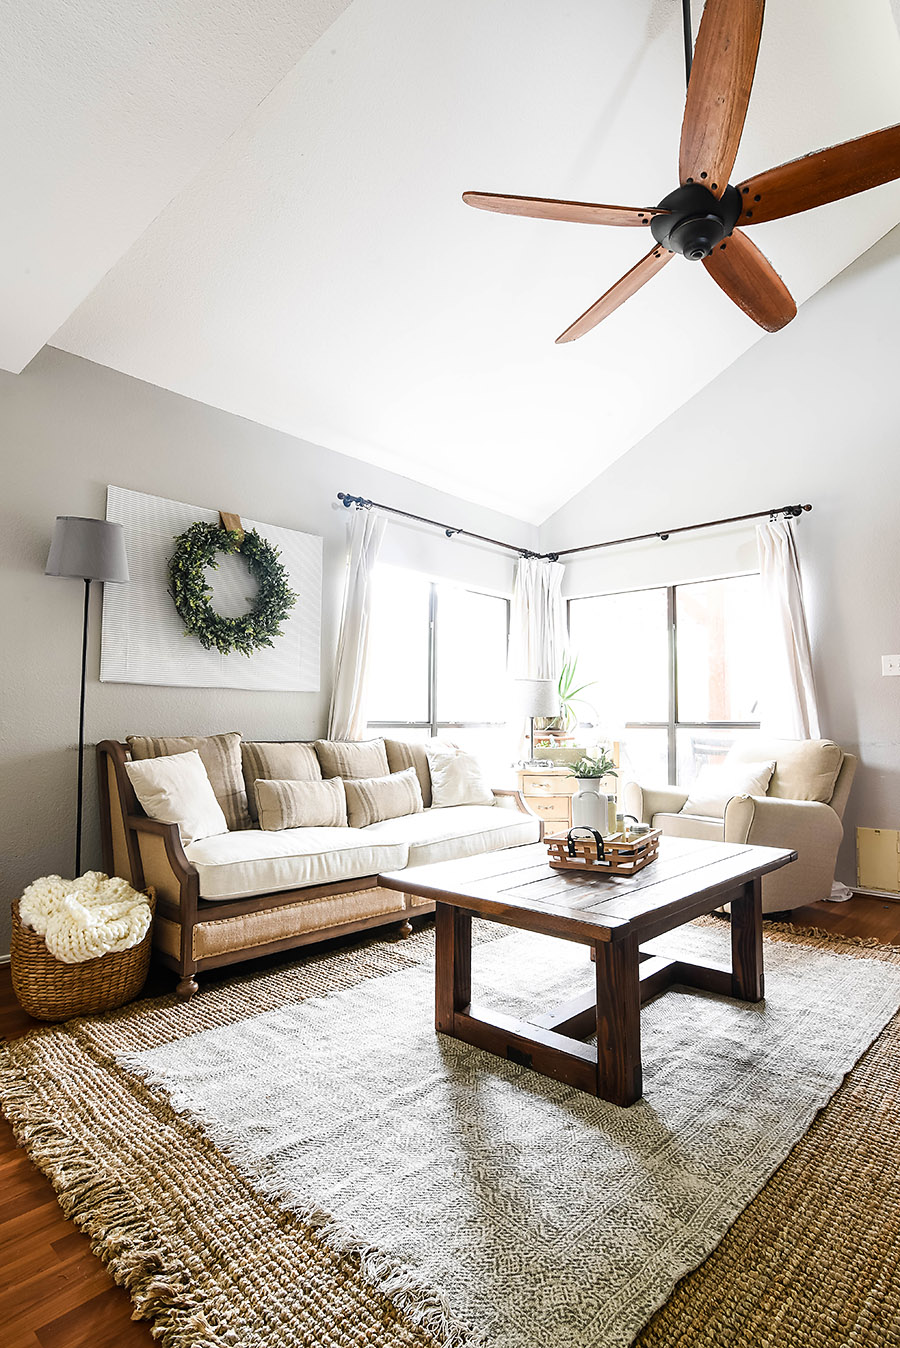 Belgian Country Living Room Makeover Reveal - One Room ...